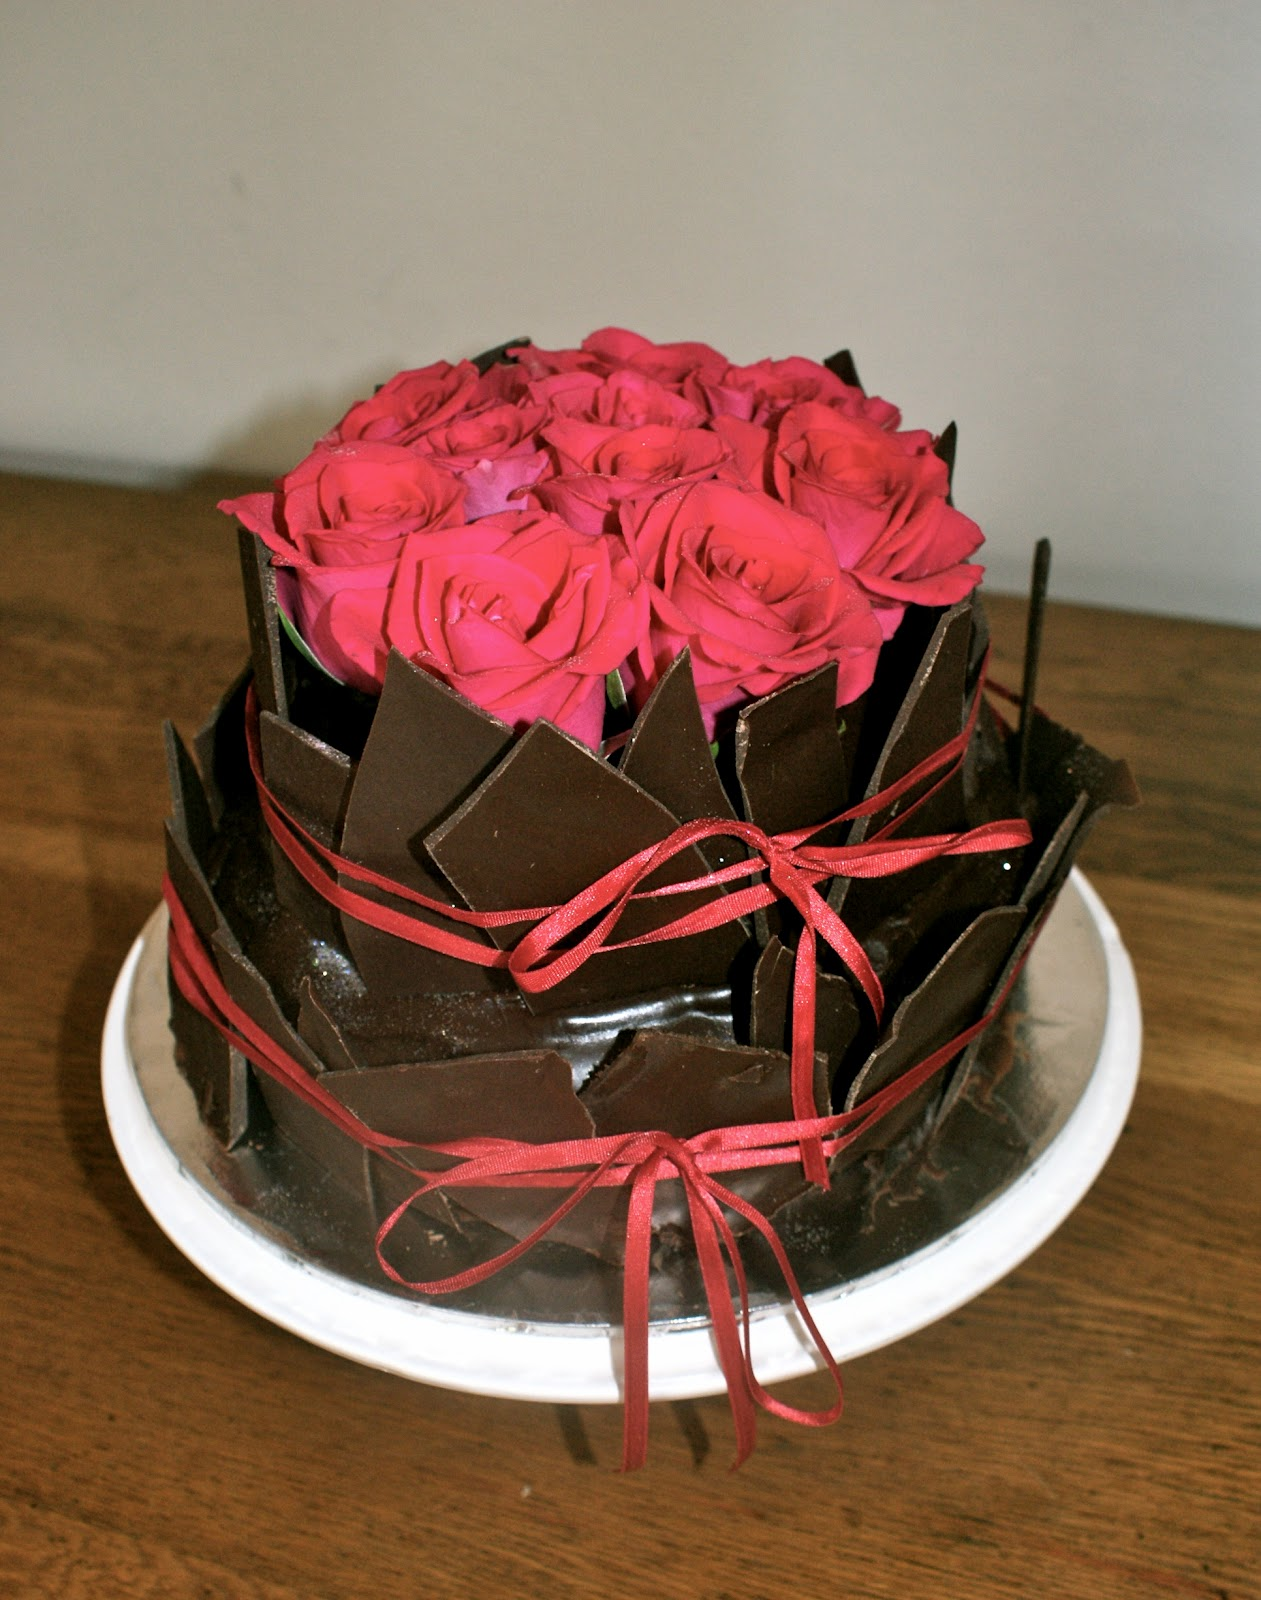 My Favourite Cupcake Rose Chocolate and Ganache Cake